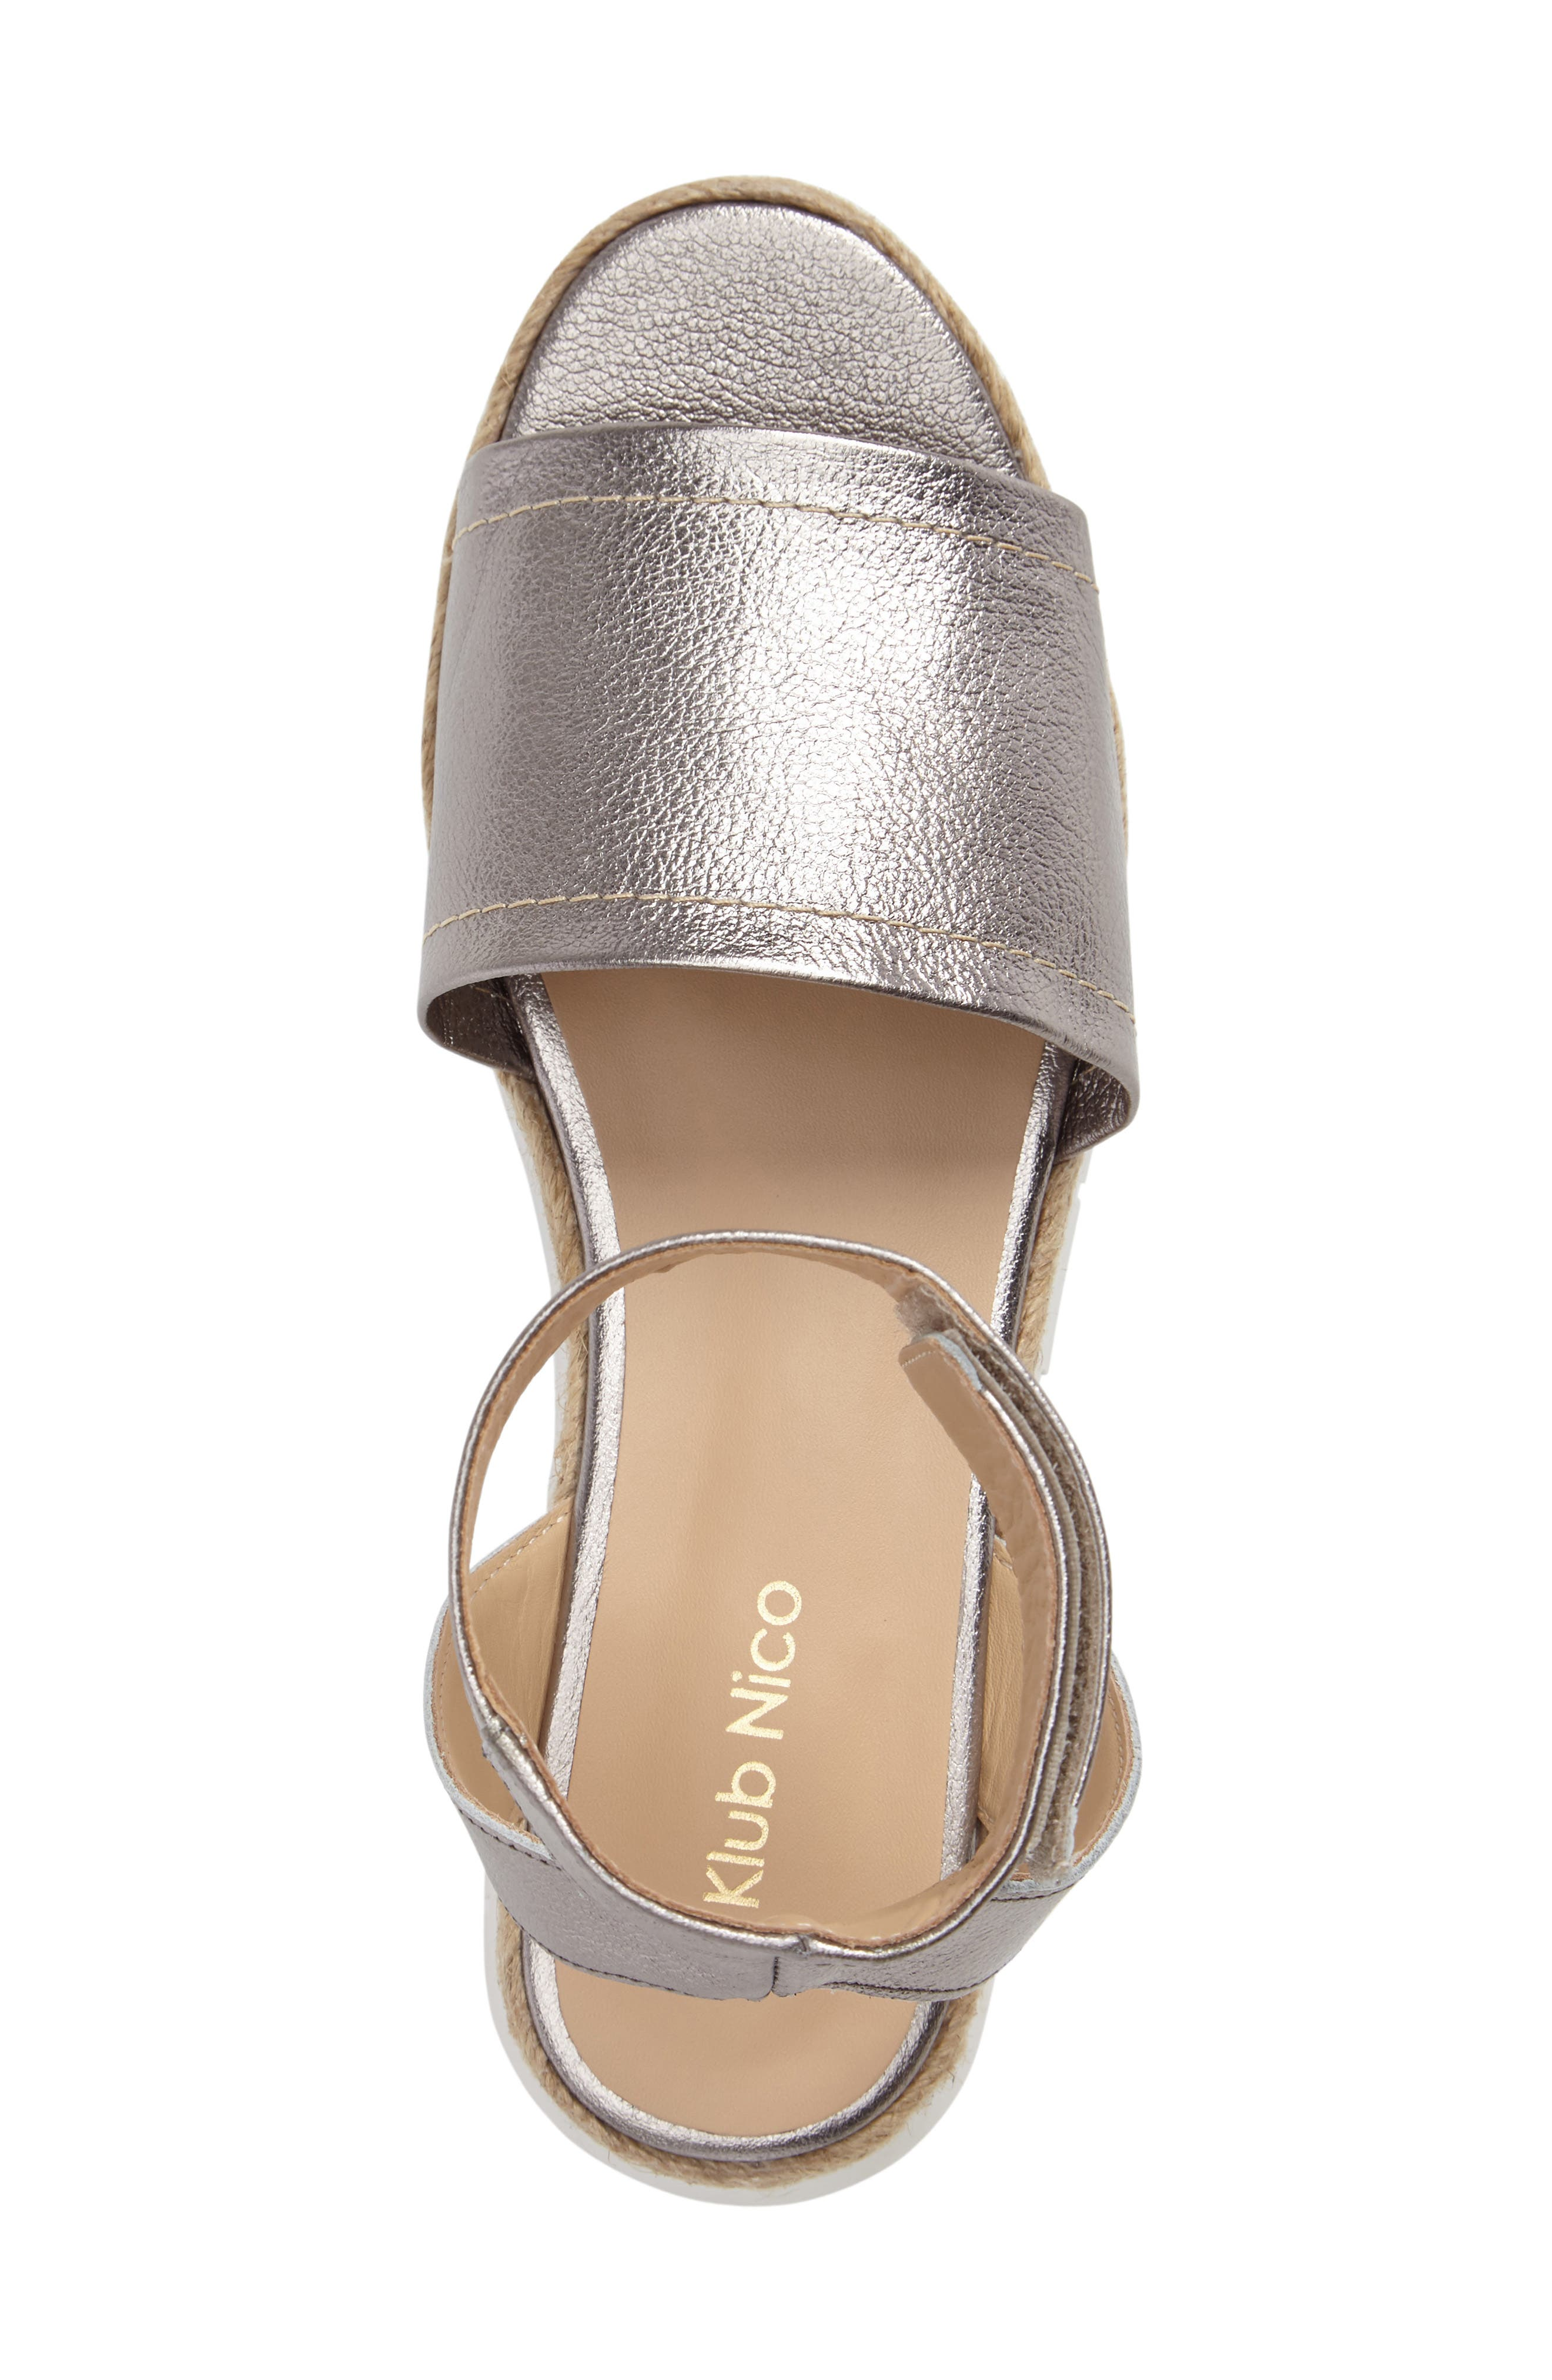 Cleo Platform Sandal,                             Alternate thumbnail 3, color,                             021